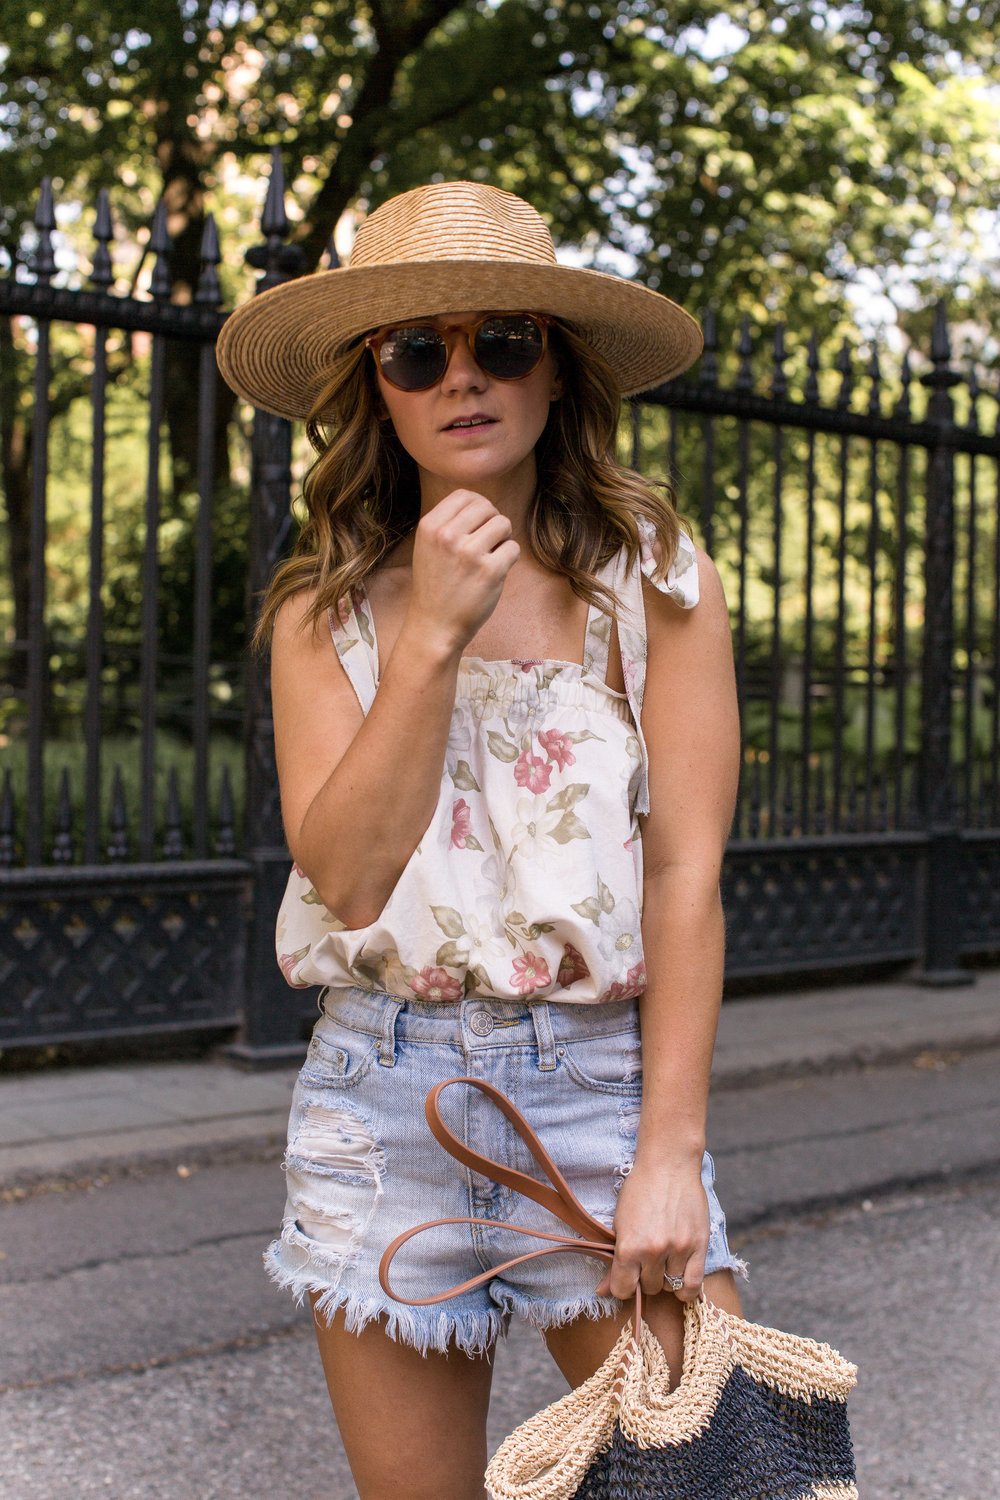 fizz-fade-summer-city-florals-9.jpg